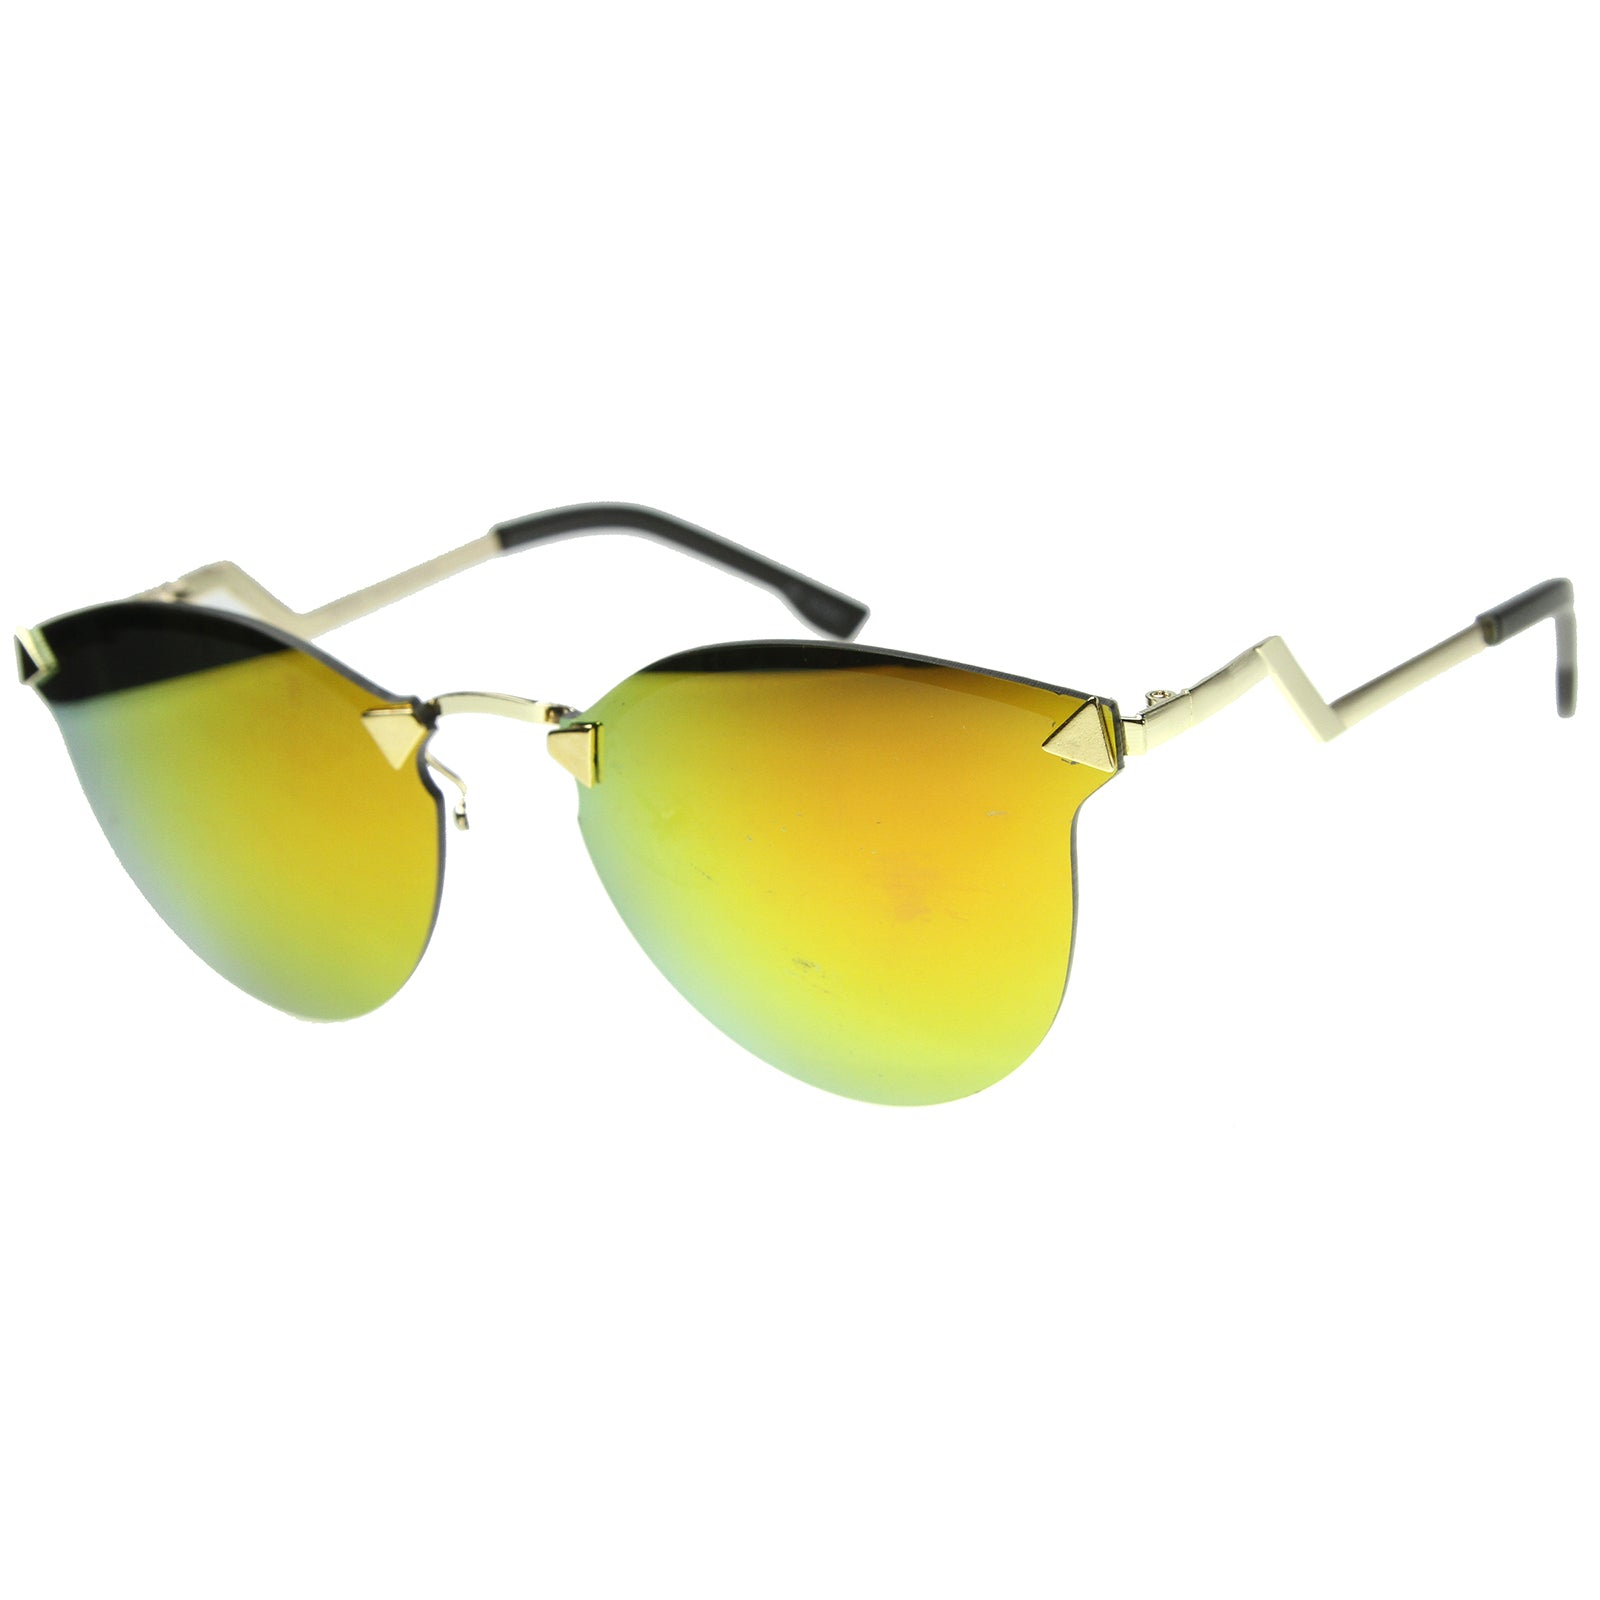 Mens Metal Aviator Sunglasses With UV400 Protected Mirrored Lens - sunglass.la - 7